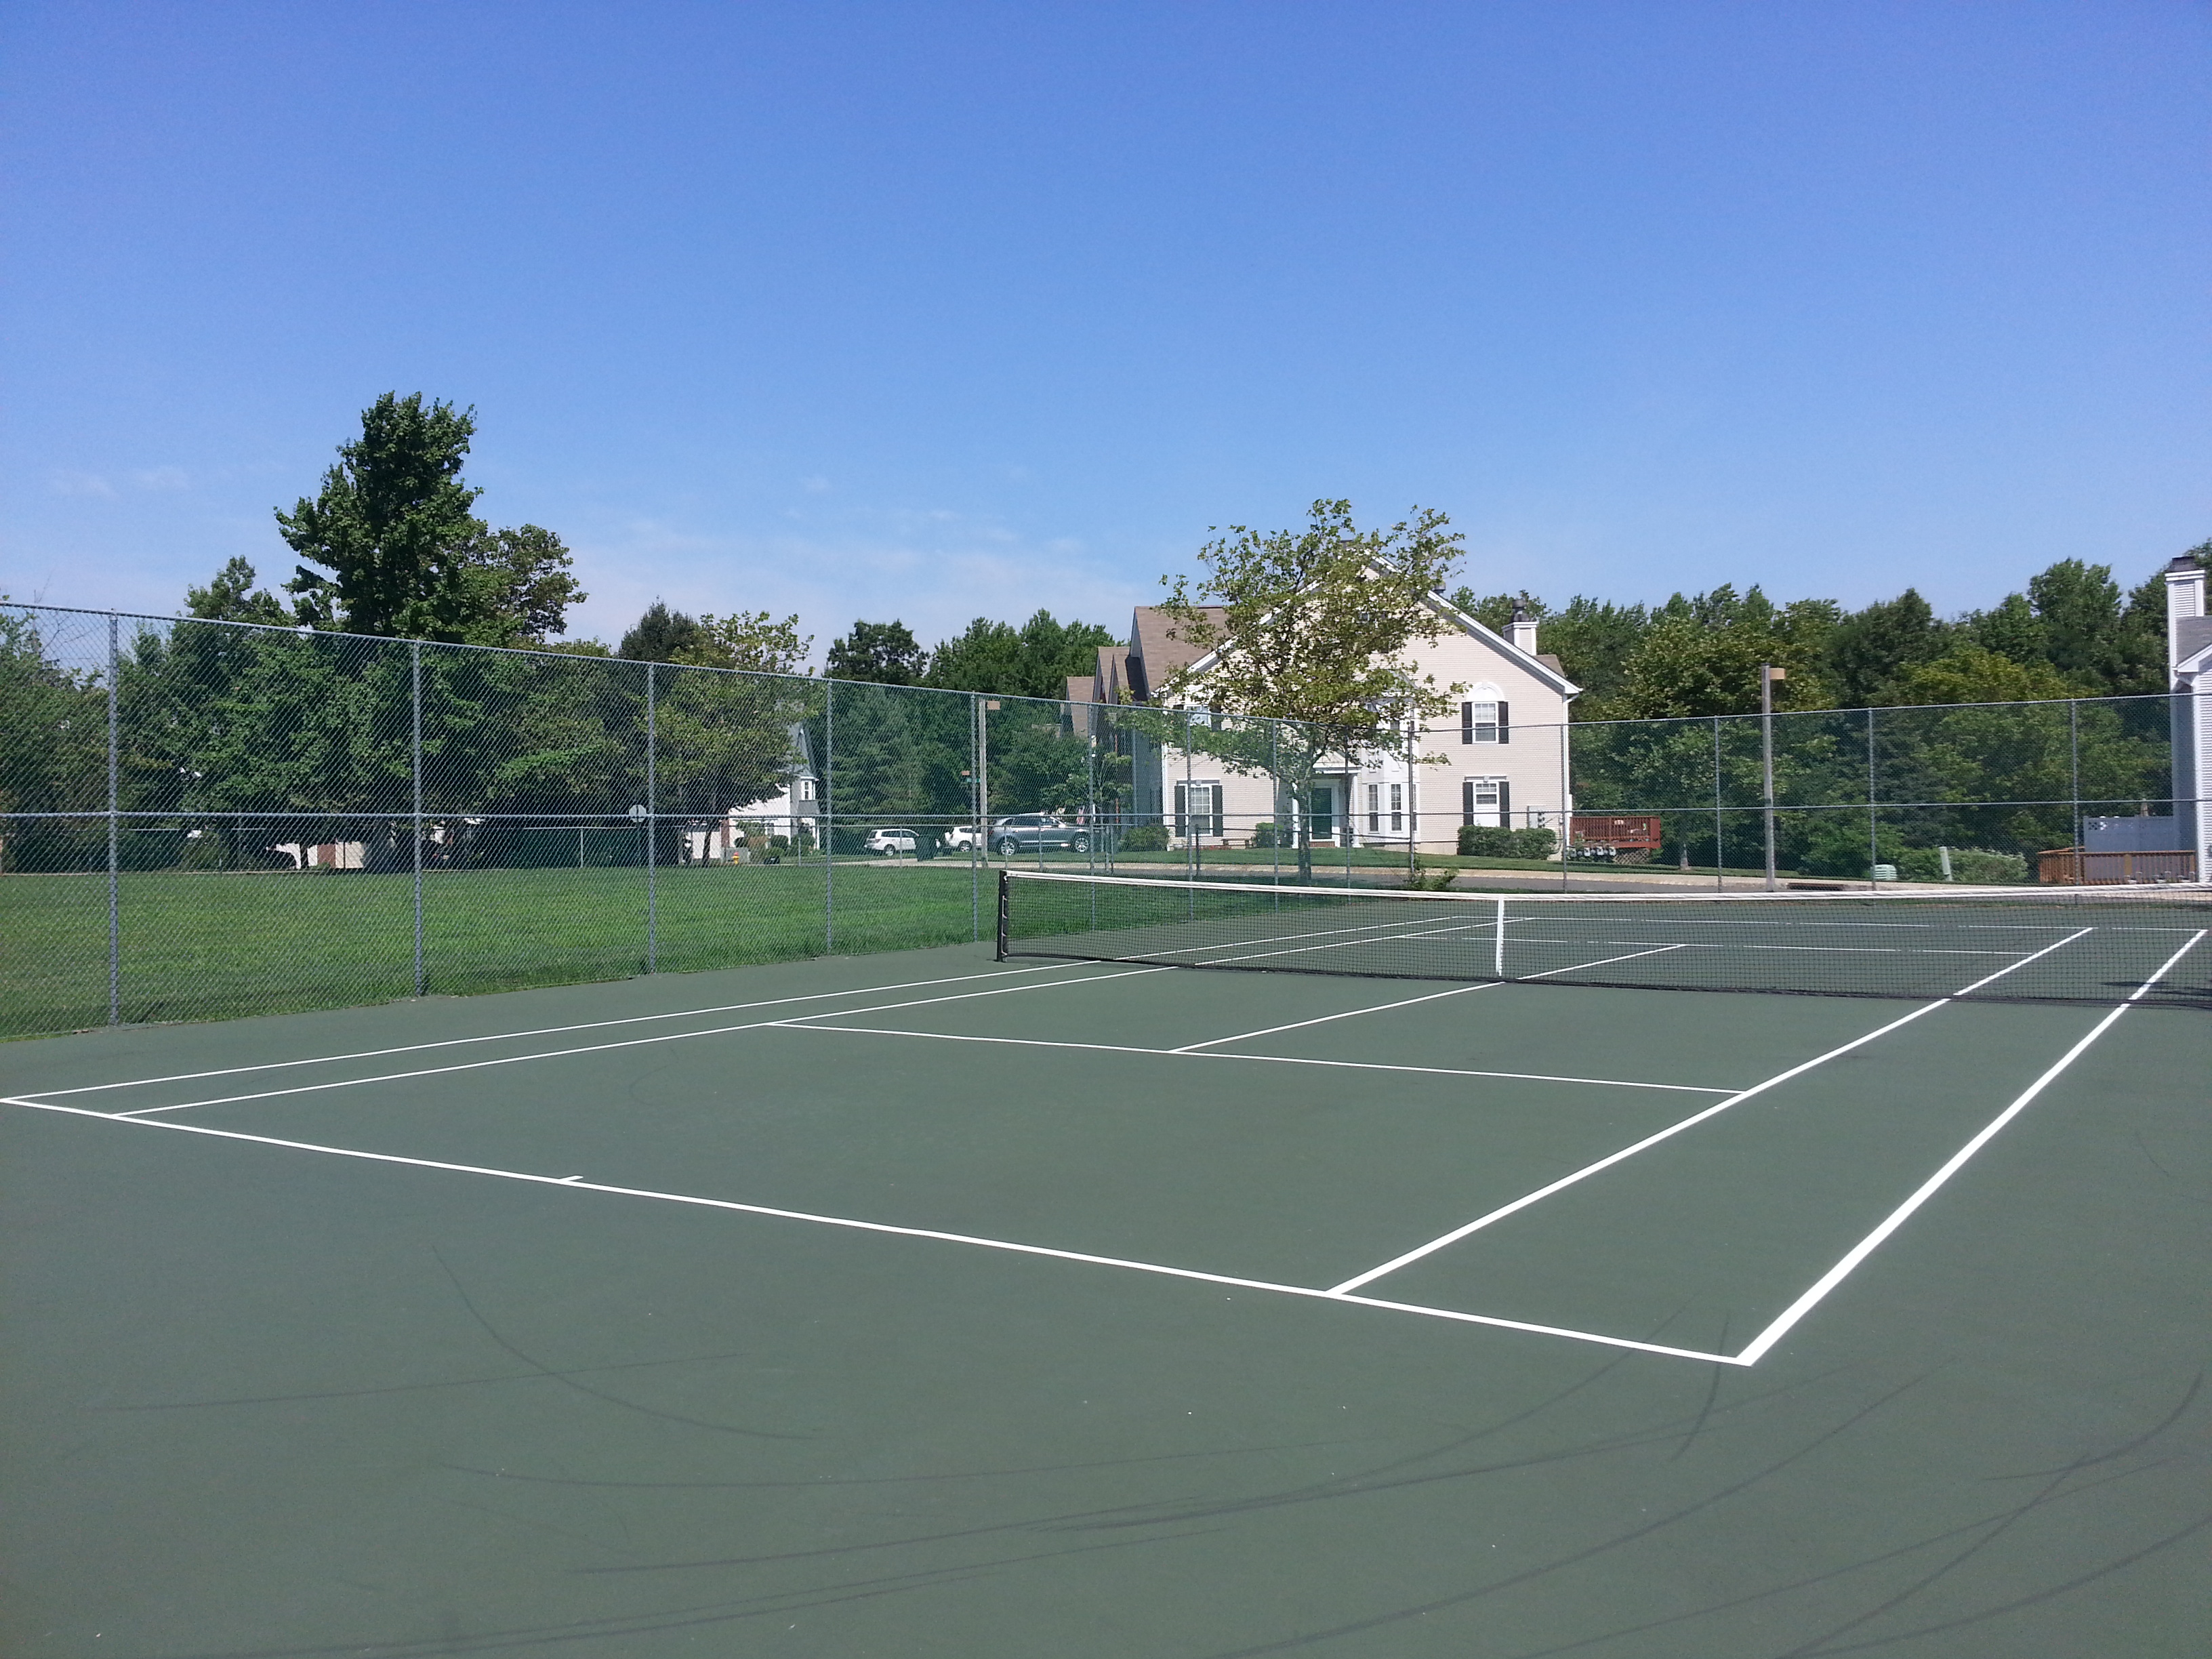 Among The Orchards amenities is this centrally located tennis court.